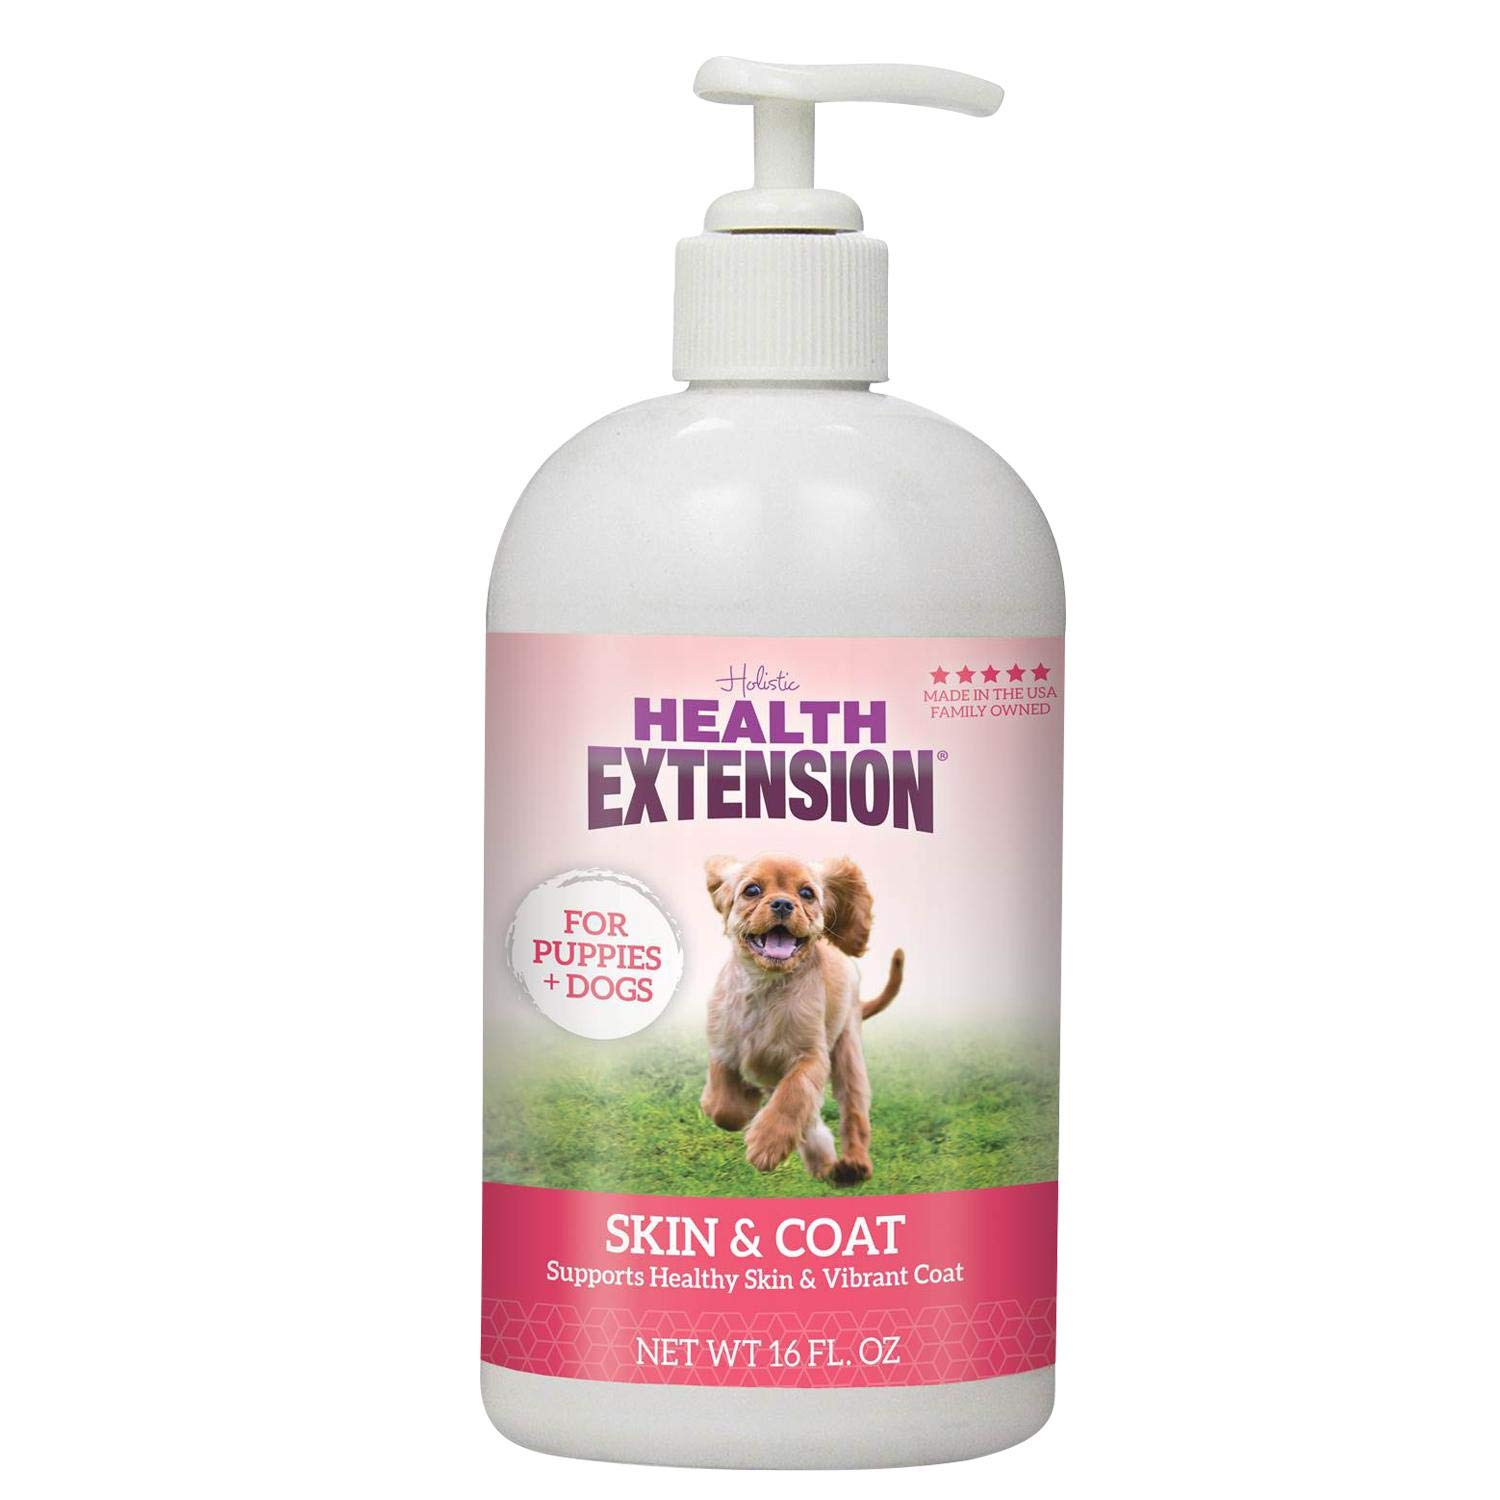 Health Extension Skin & Coat Puppies Dogs, 16-ounces